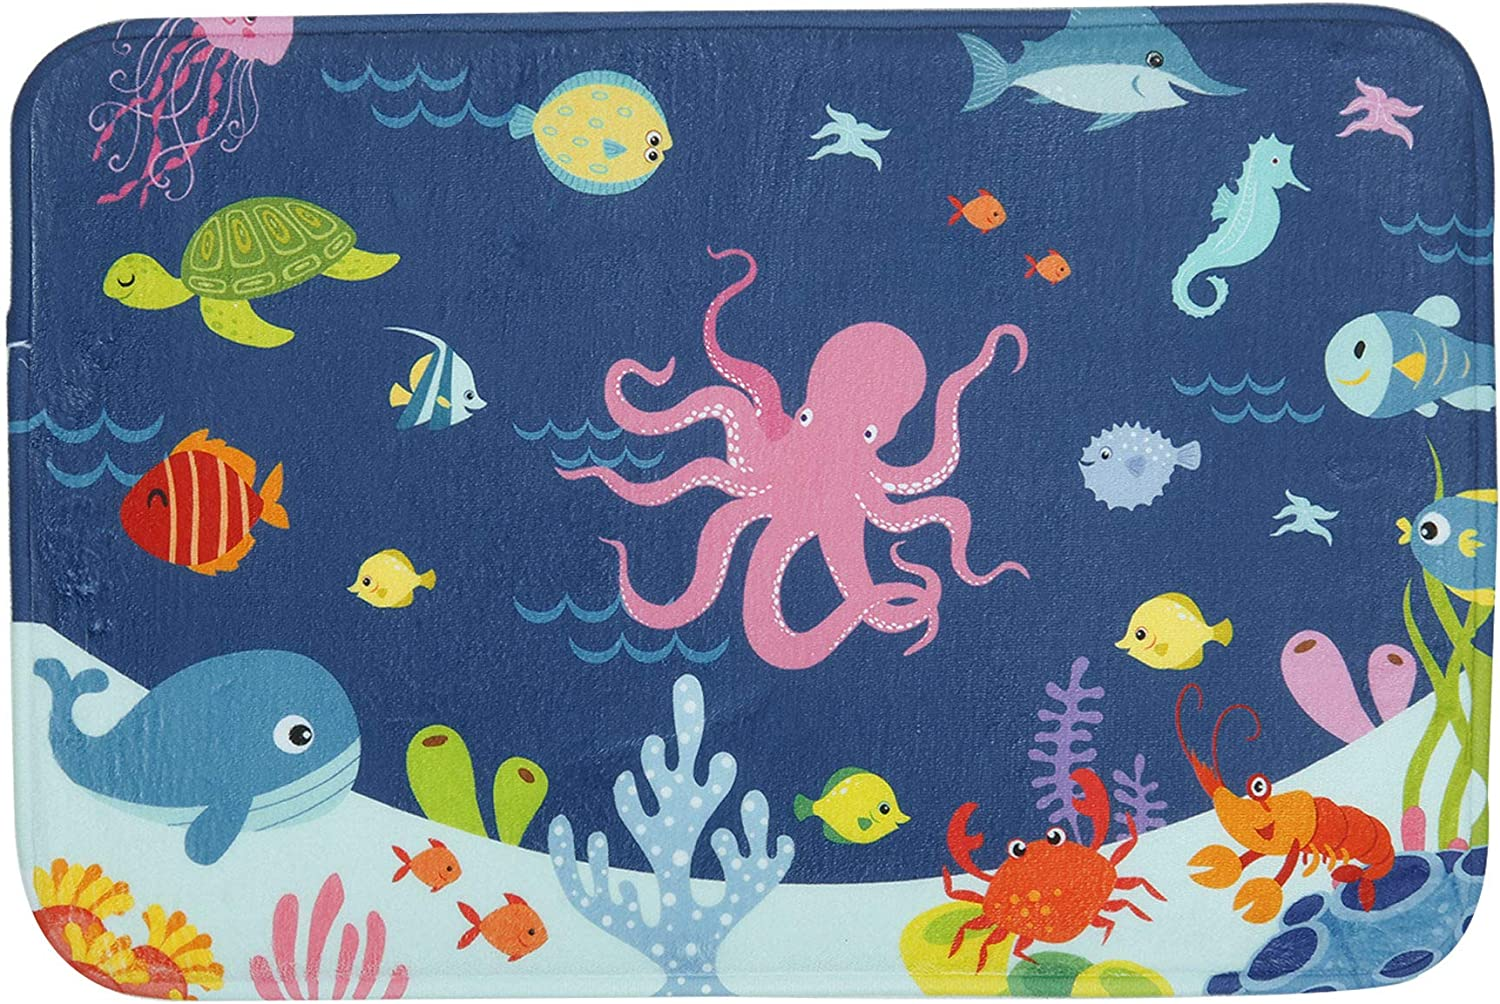 Bathroom Rug Mat, 24''X16'', Super Soft and Absorbent Shaggy Plush Nautical Sea Bath Rugs for Kids, Thicken, Non Slip, Carpet Mats for Shower and Bathroom, Cartoon Octopus Undersea Animals World